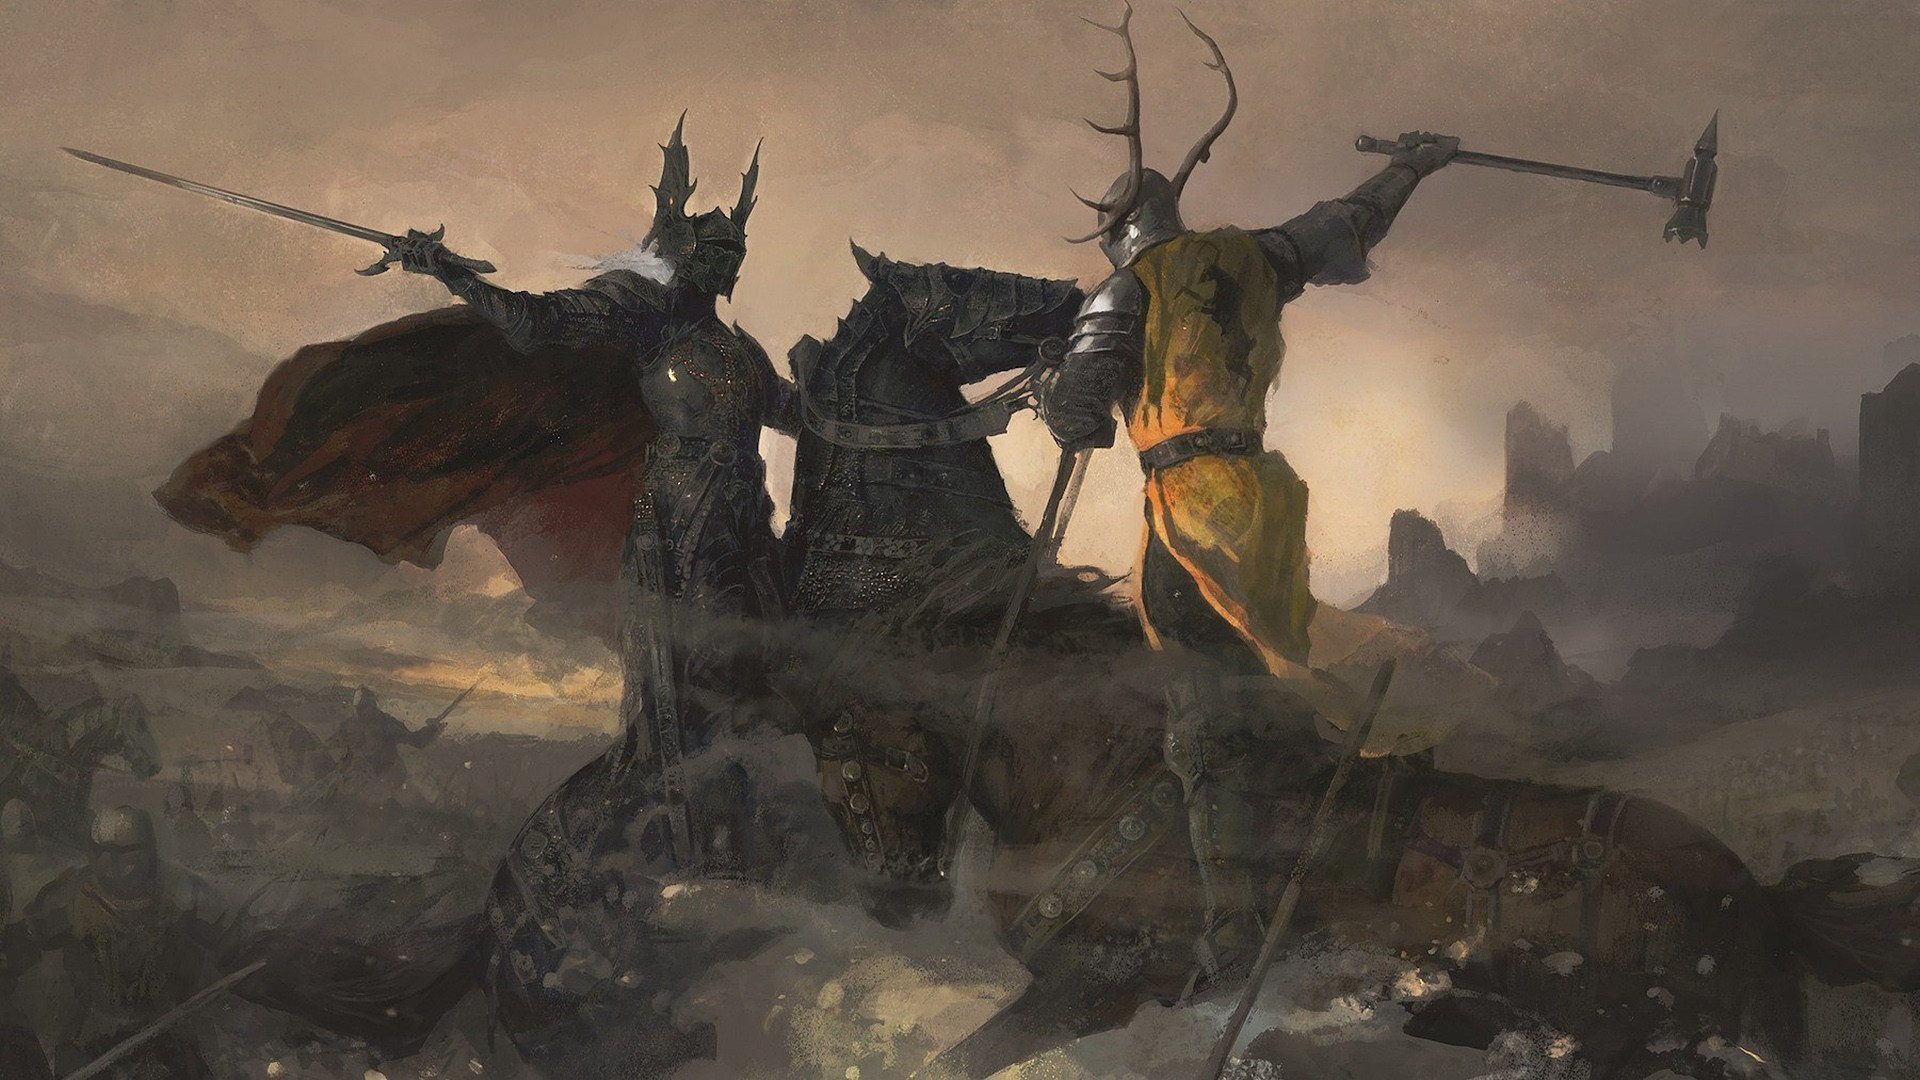 A Song Of Ice And Fire Wallpapers - DodoWallpaper